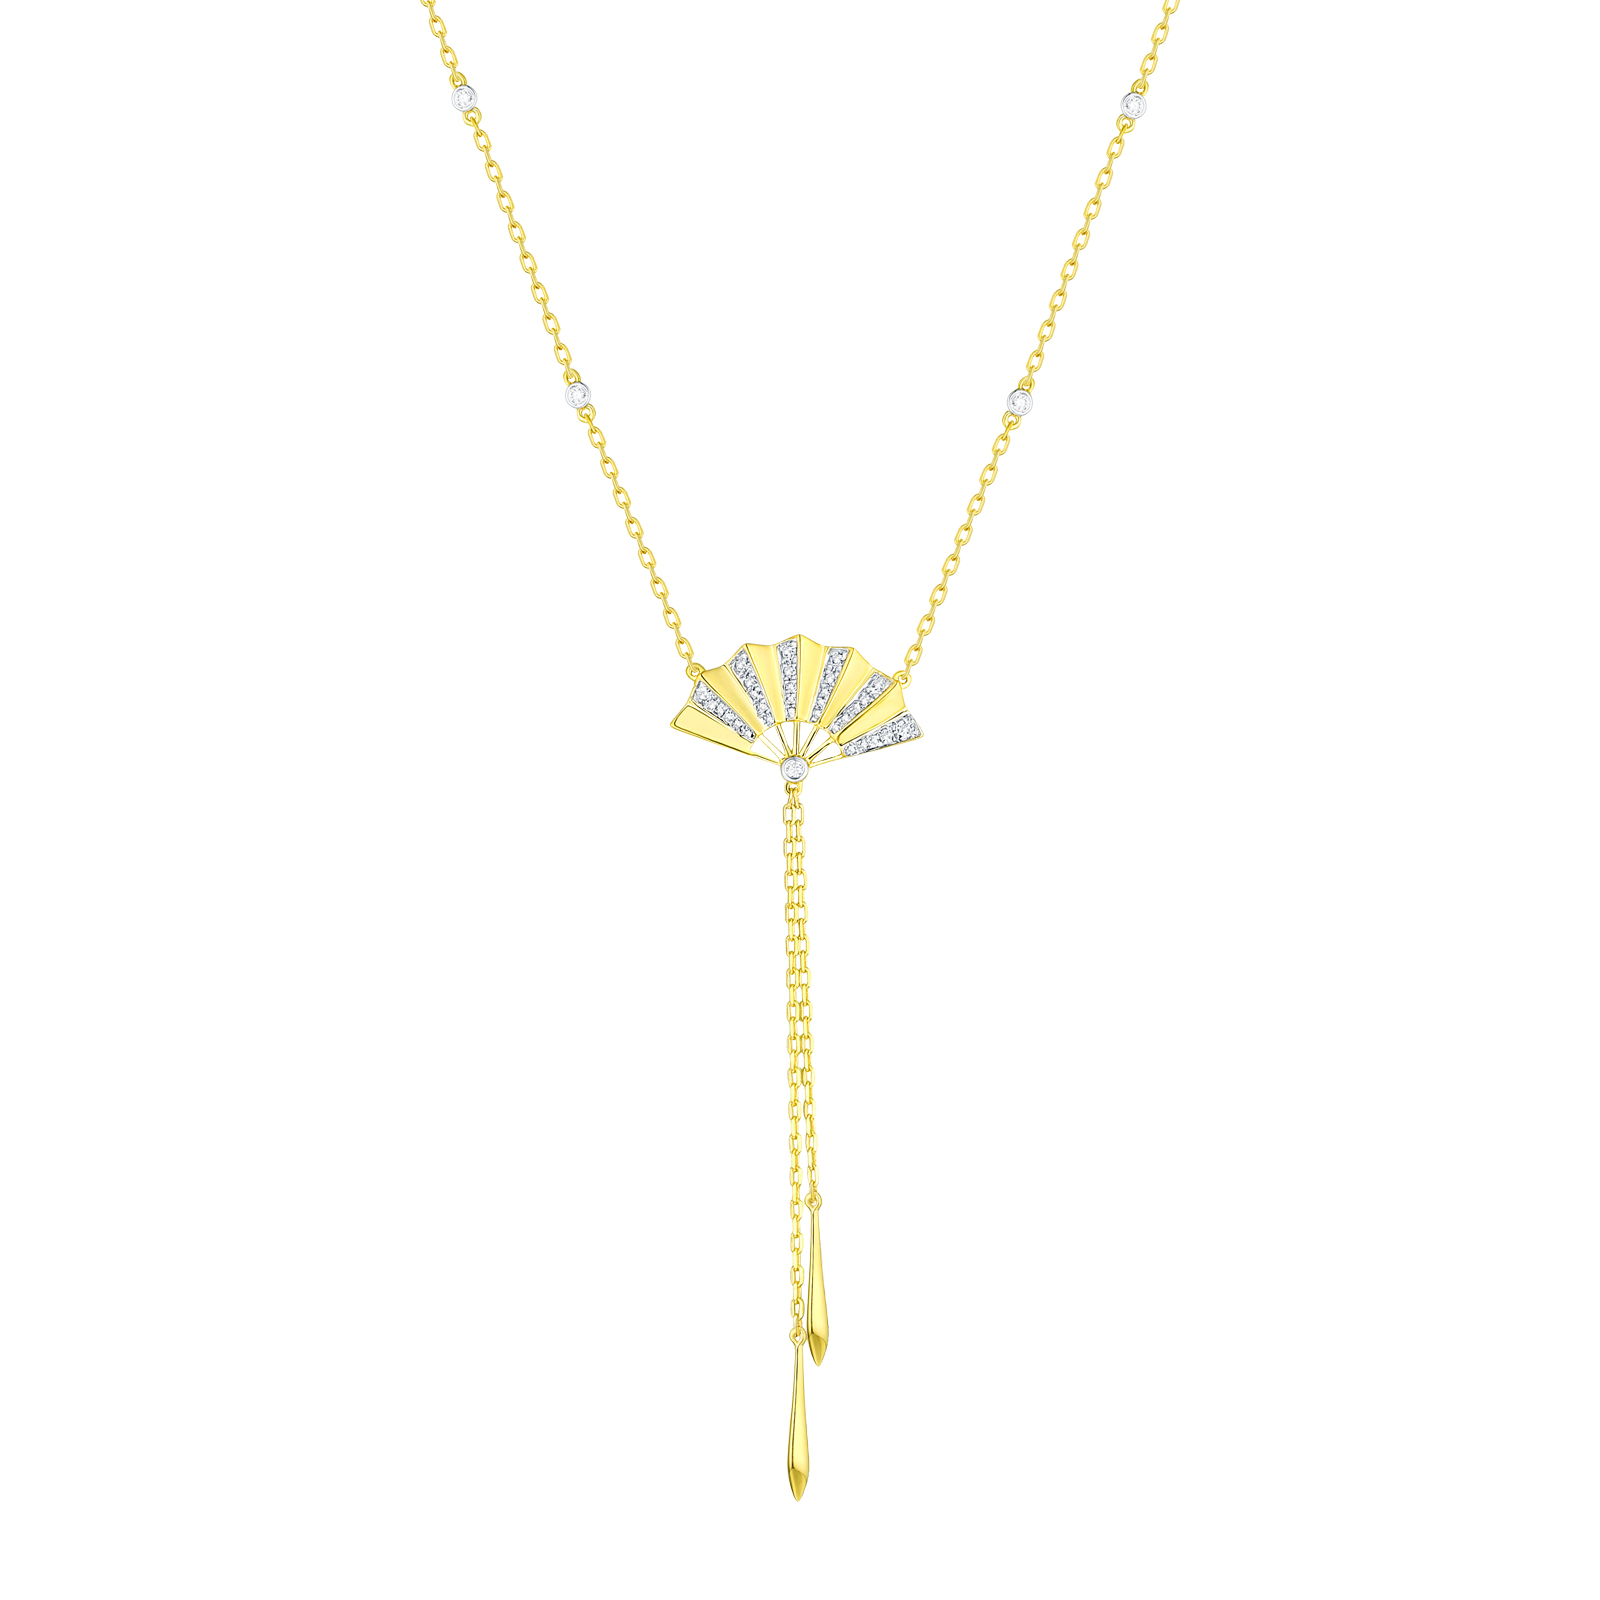 NL29859WHT- 14K Yellow Gold Diamond Necklace, 0.15 TCW